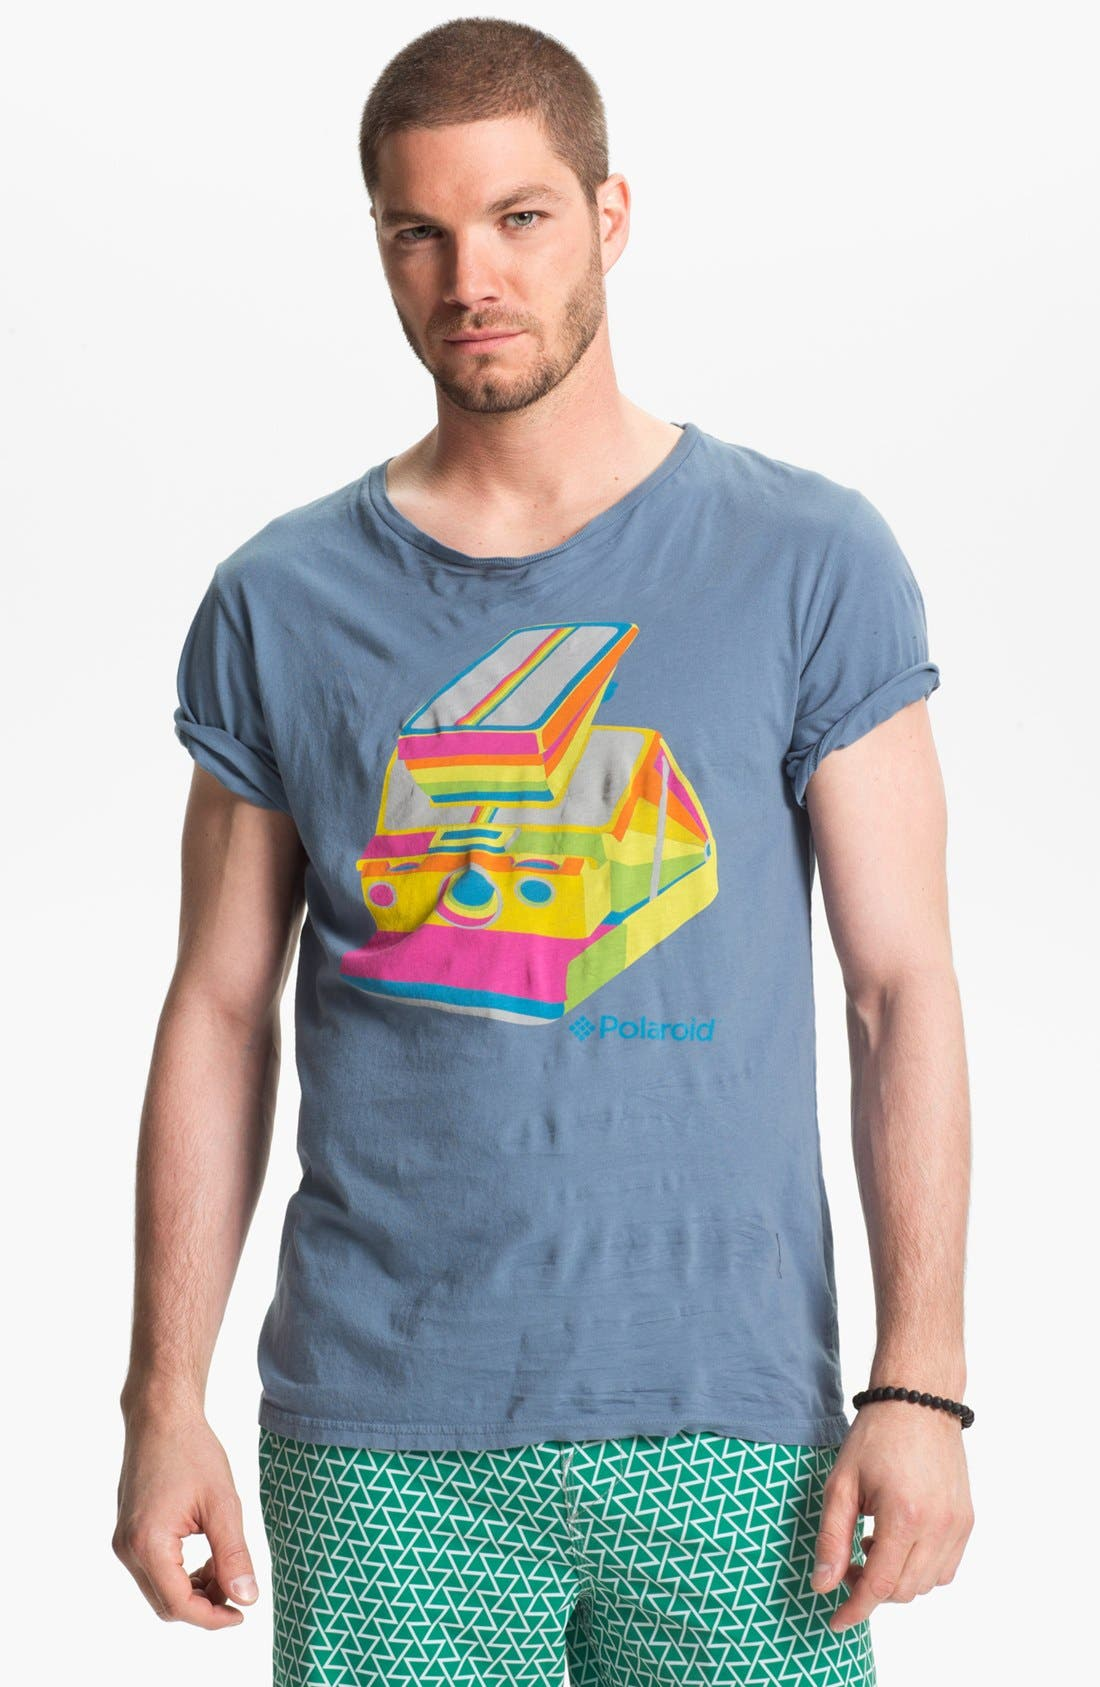 Alternate Image 1 Selected - Altru 'Polaroid' Graphic T-Shirt